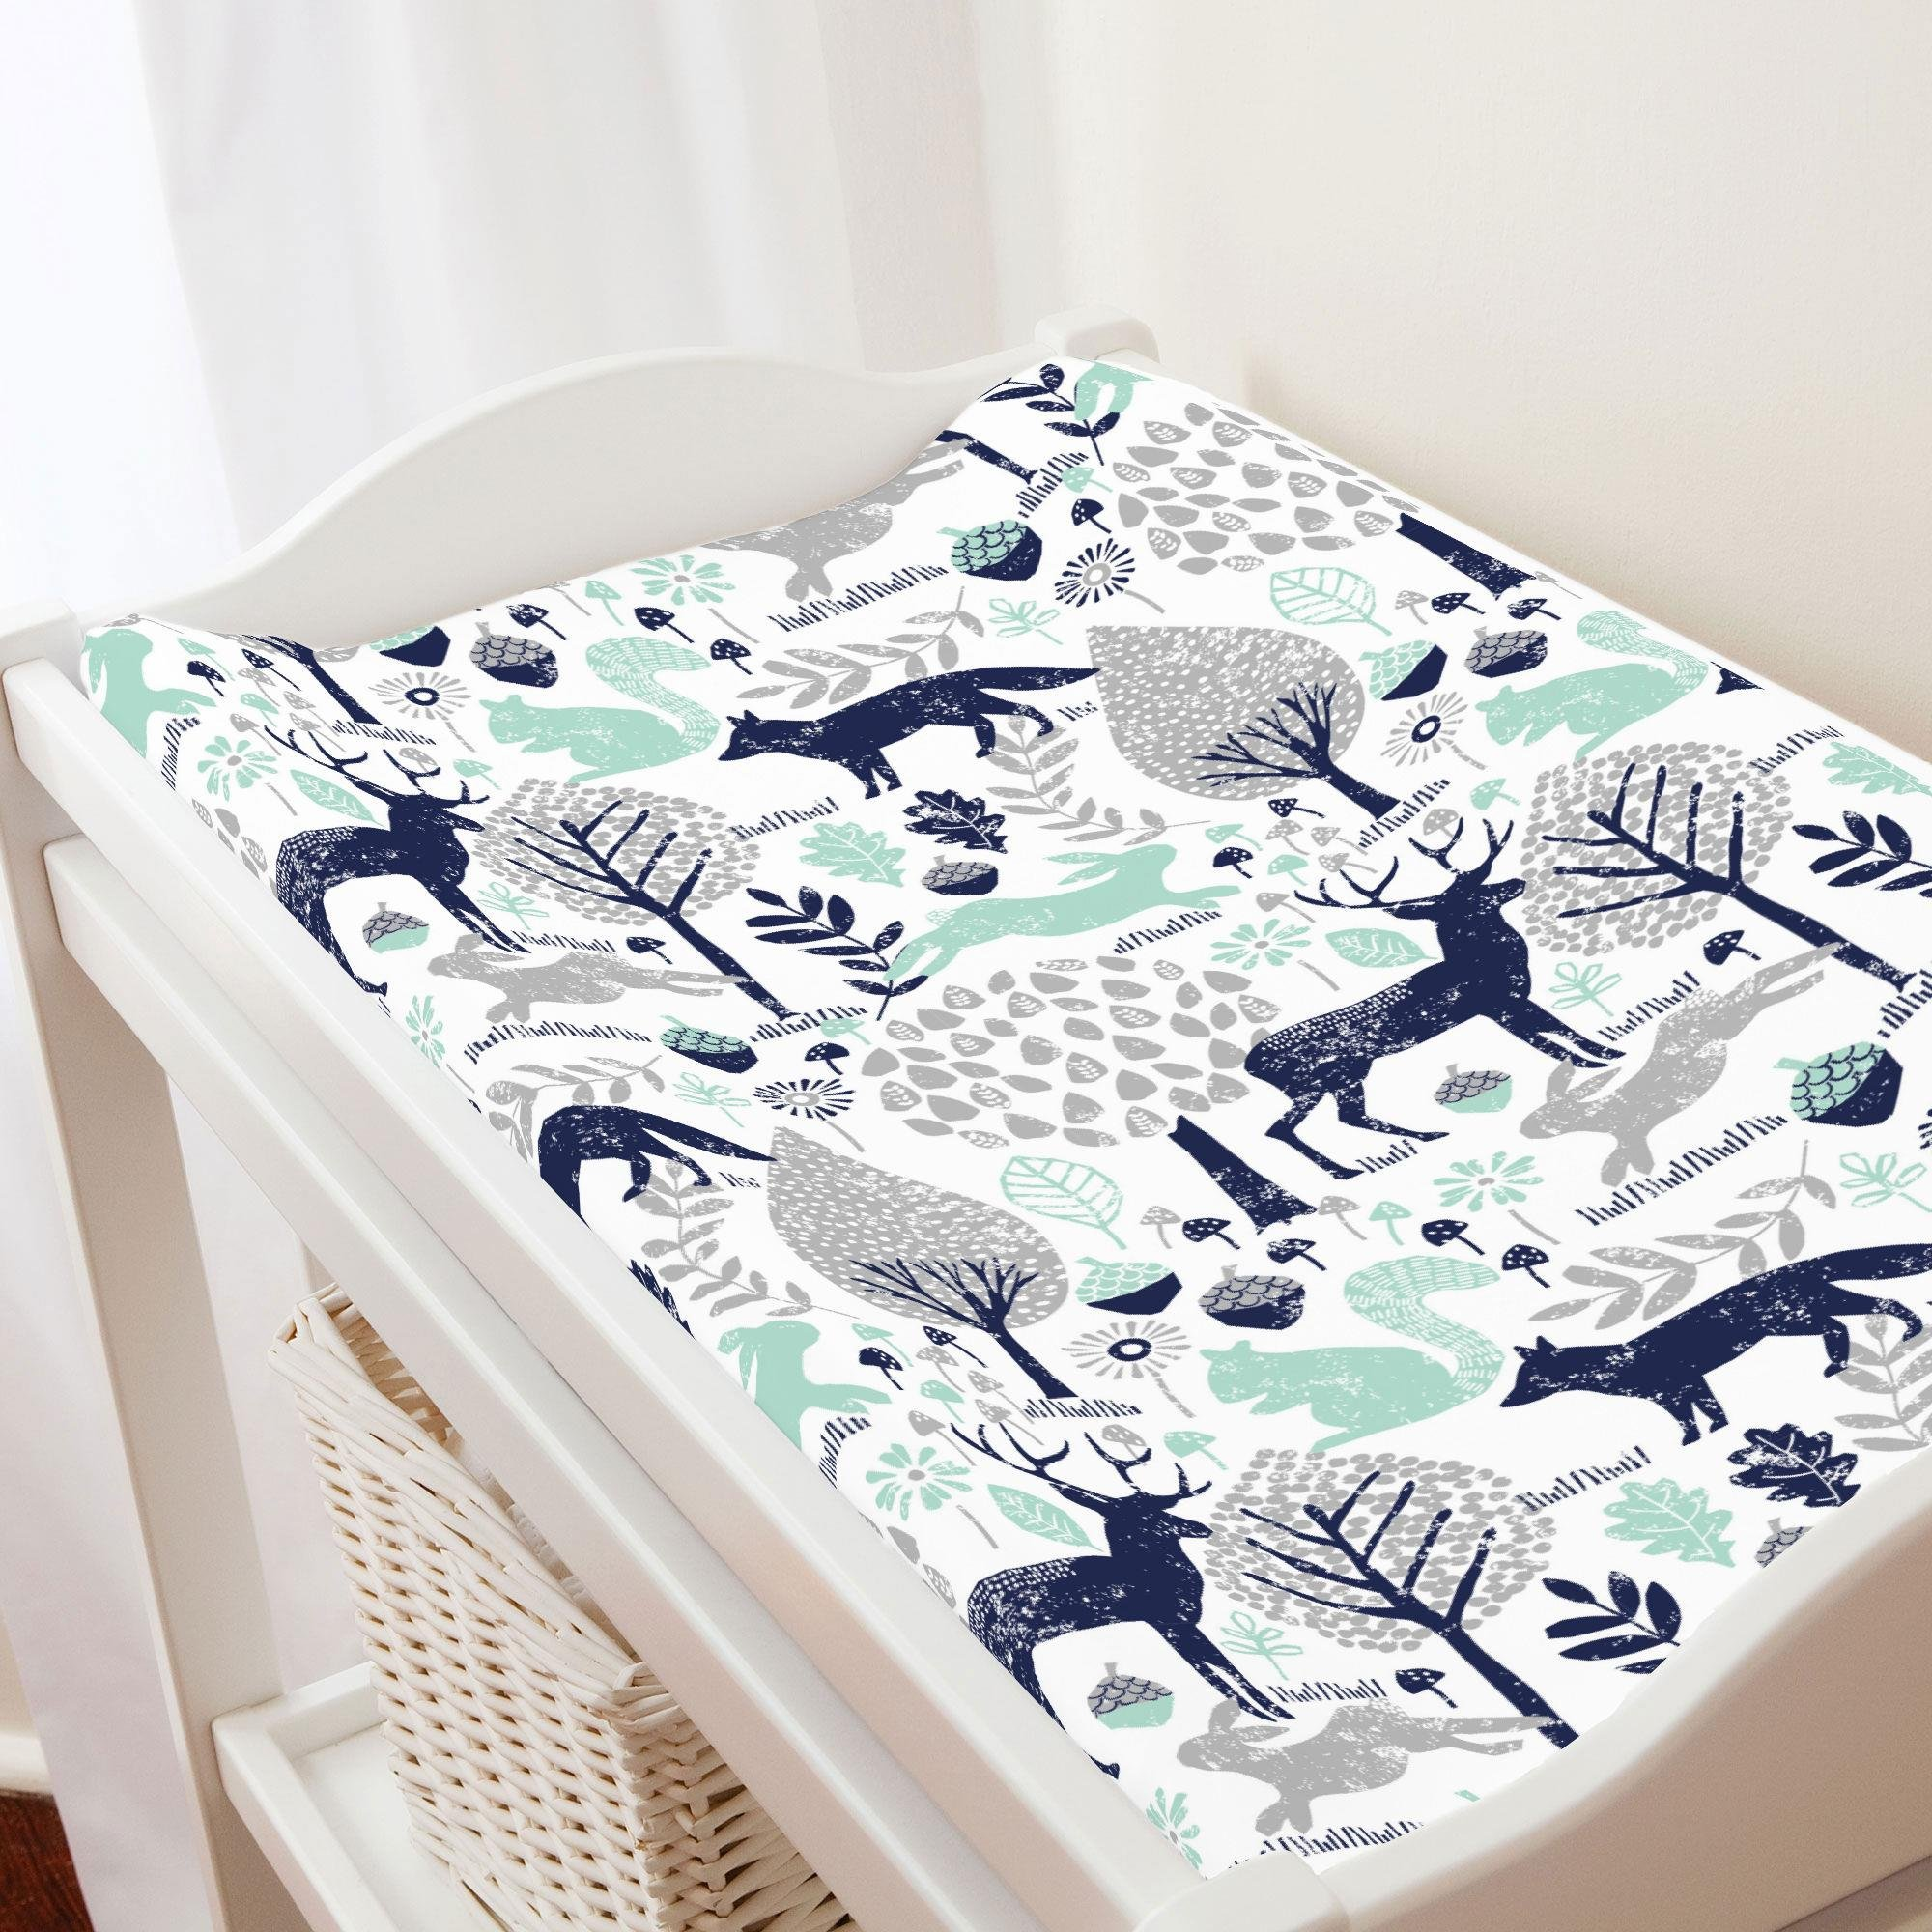 Carousel Designs Navy and Mint Woodland Animals Changing Pad Cover - Organic 100% Cotton Change Pad Cover - Made in The USA